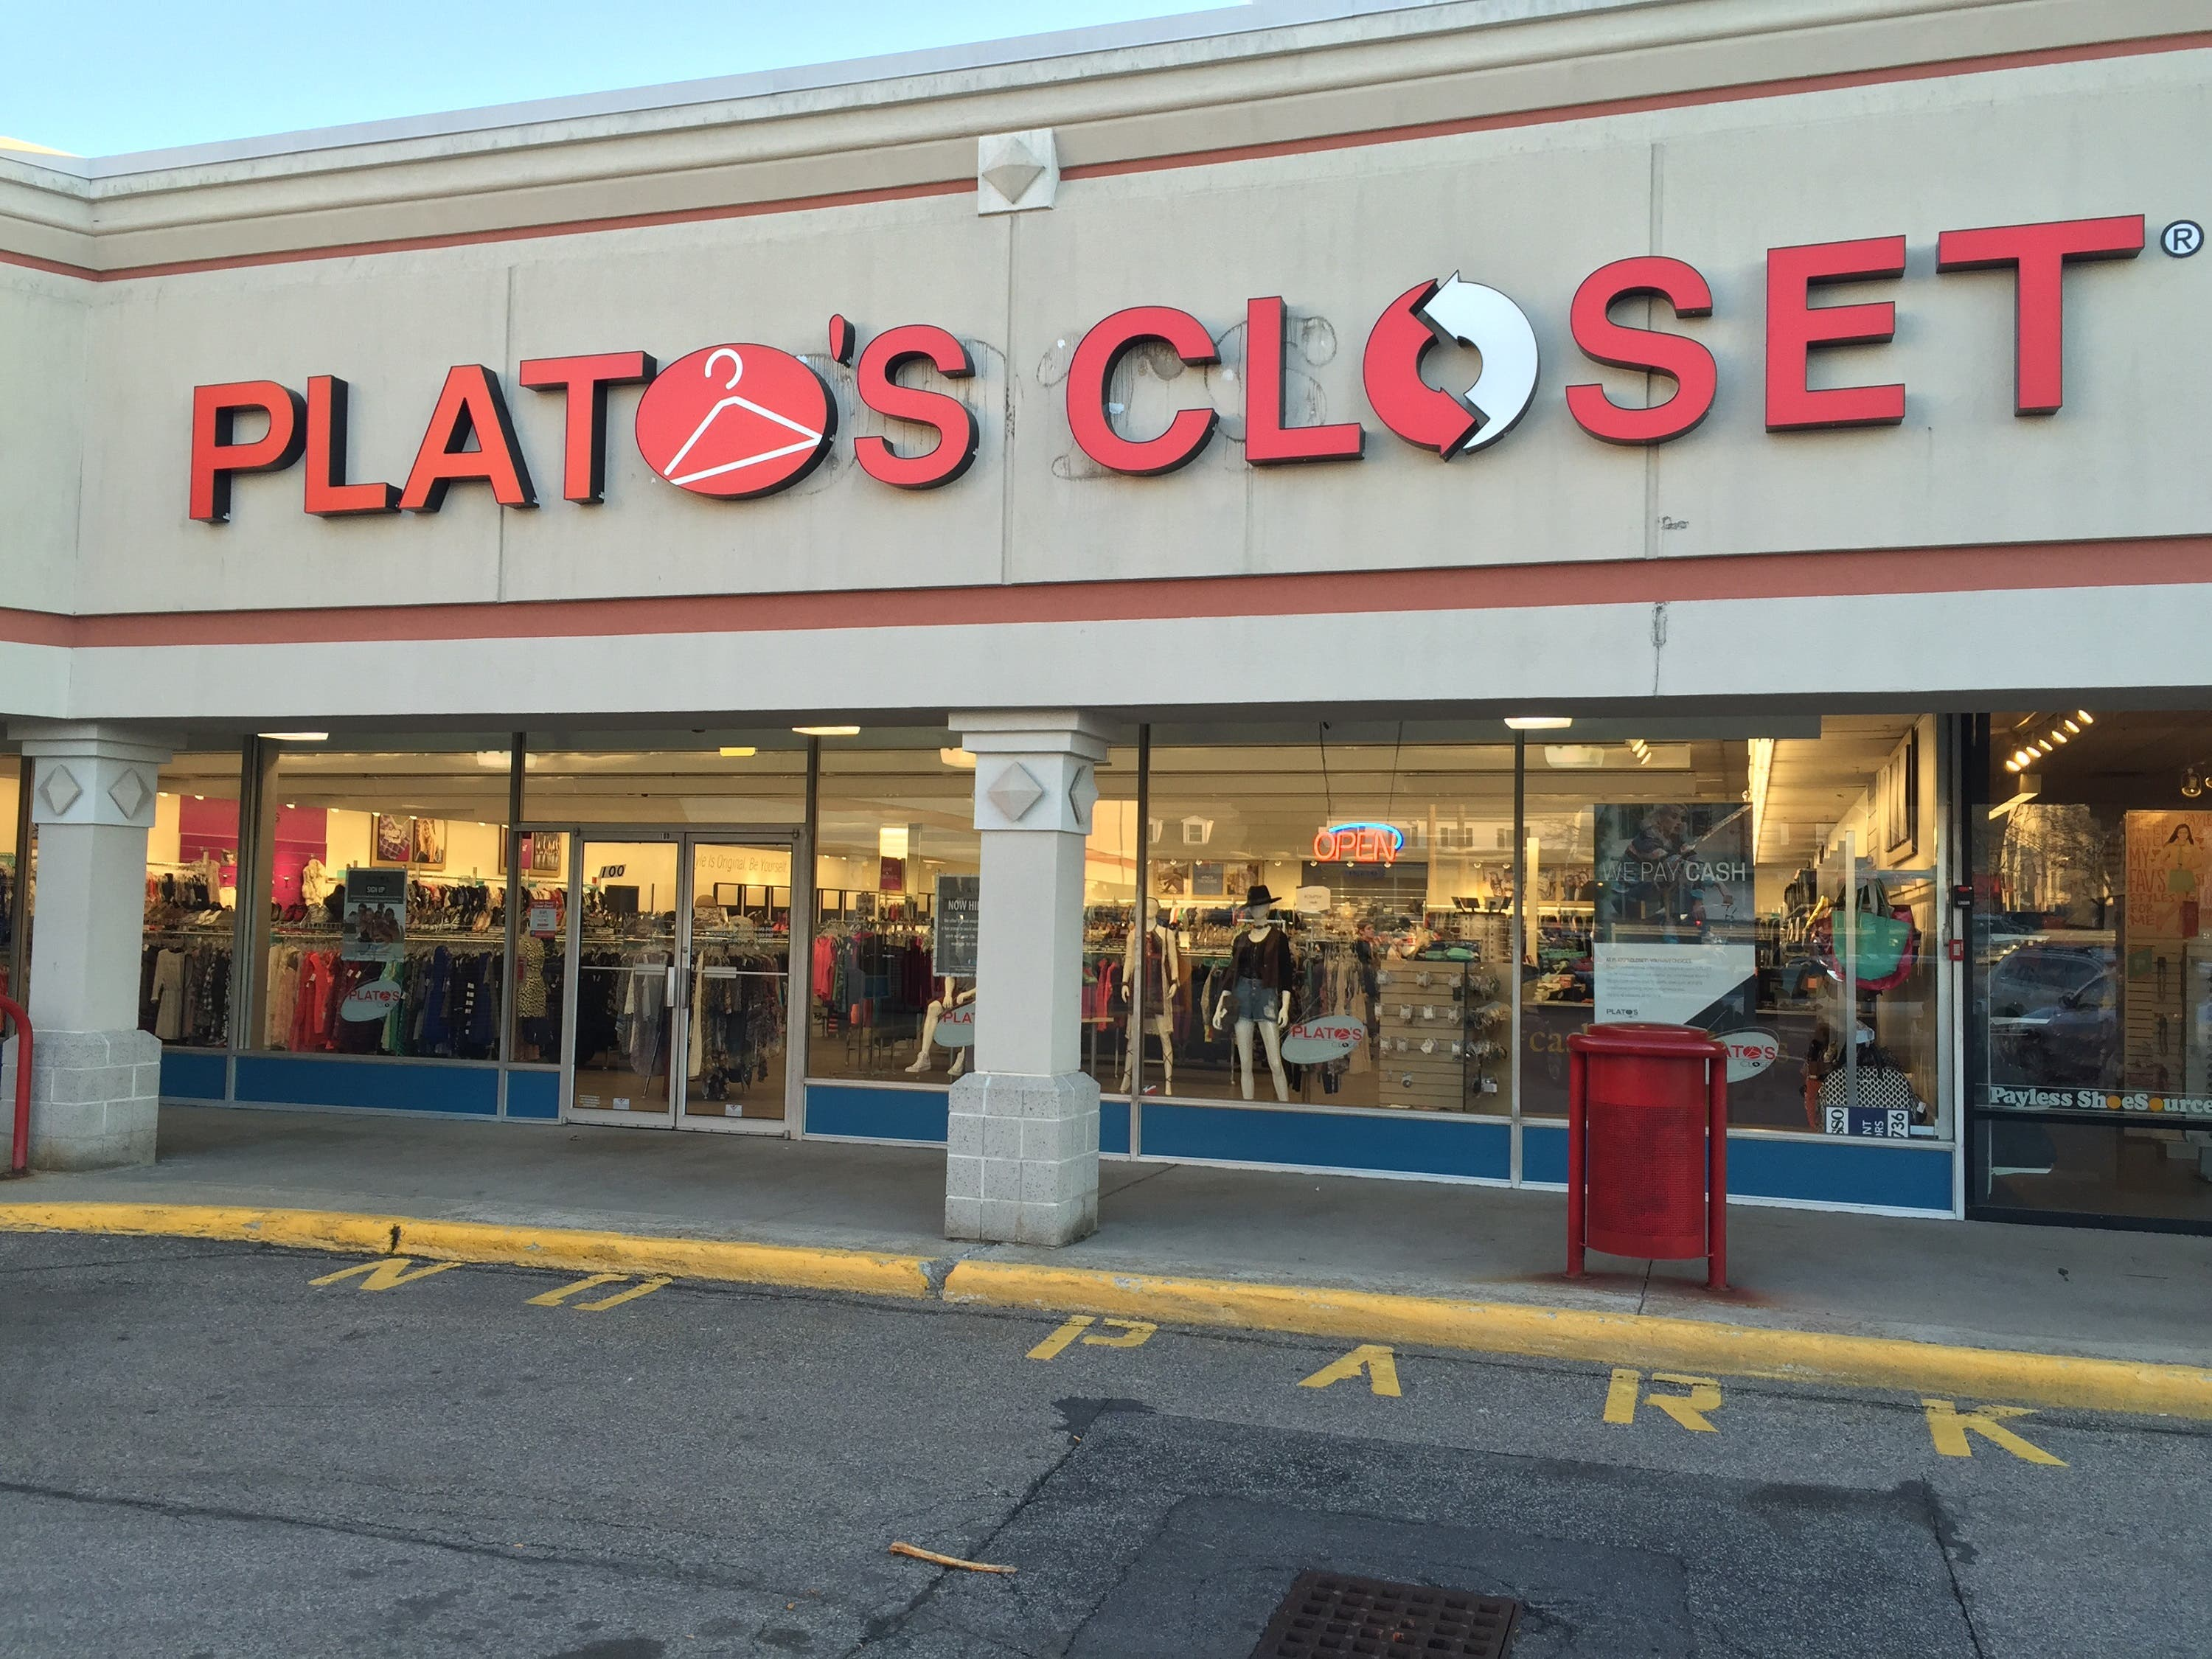 Grand Opening of Plato's Closet in Waltham | Waltham, MA Patch